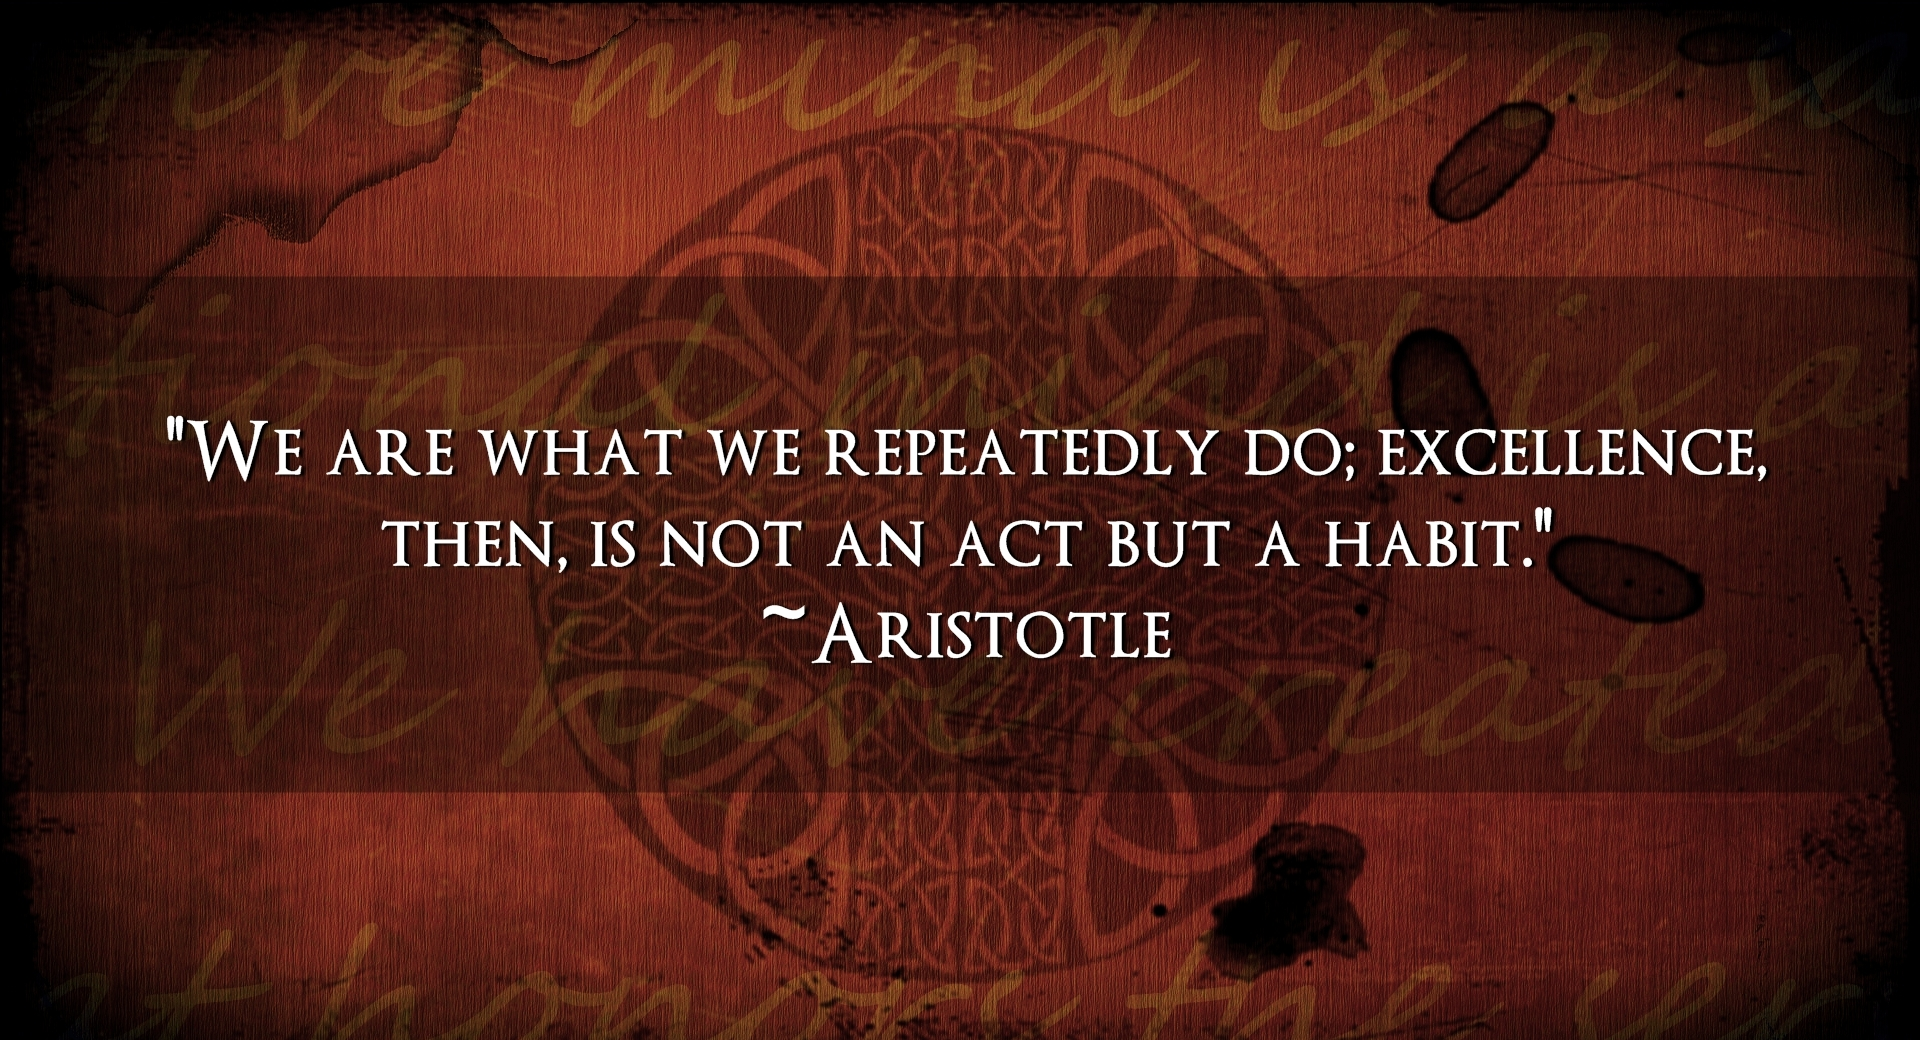 aristotle his life works and influence essay While the philosophers agreed on many components of life, they  plato's and  aristotle's opinions about rhetoric claim that words have the  and influence  others is the symbol of the mental experience, and the  works cited.